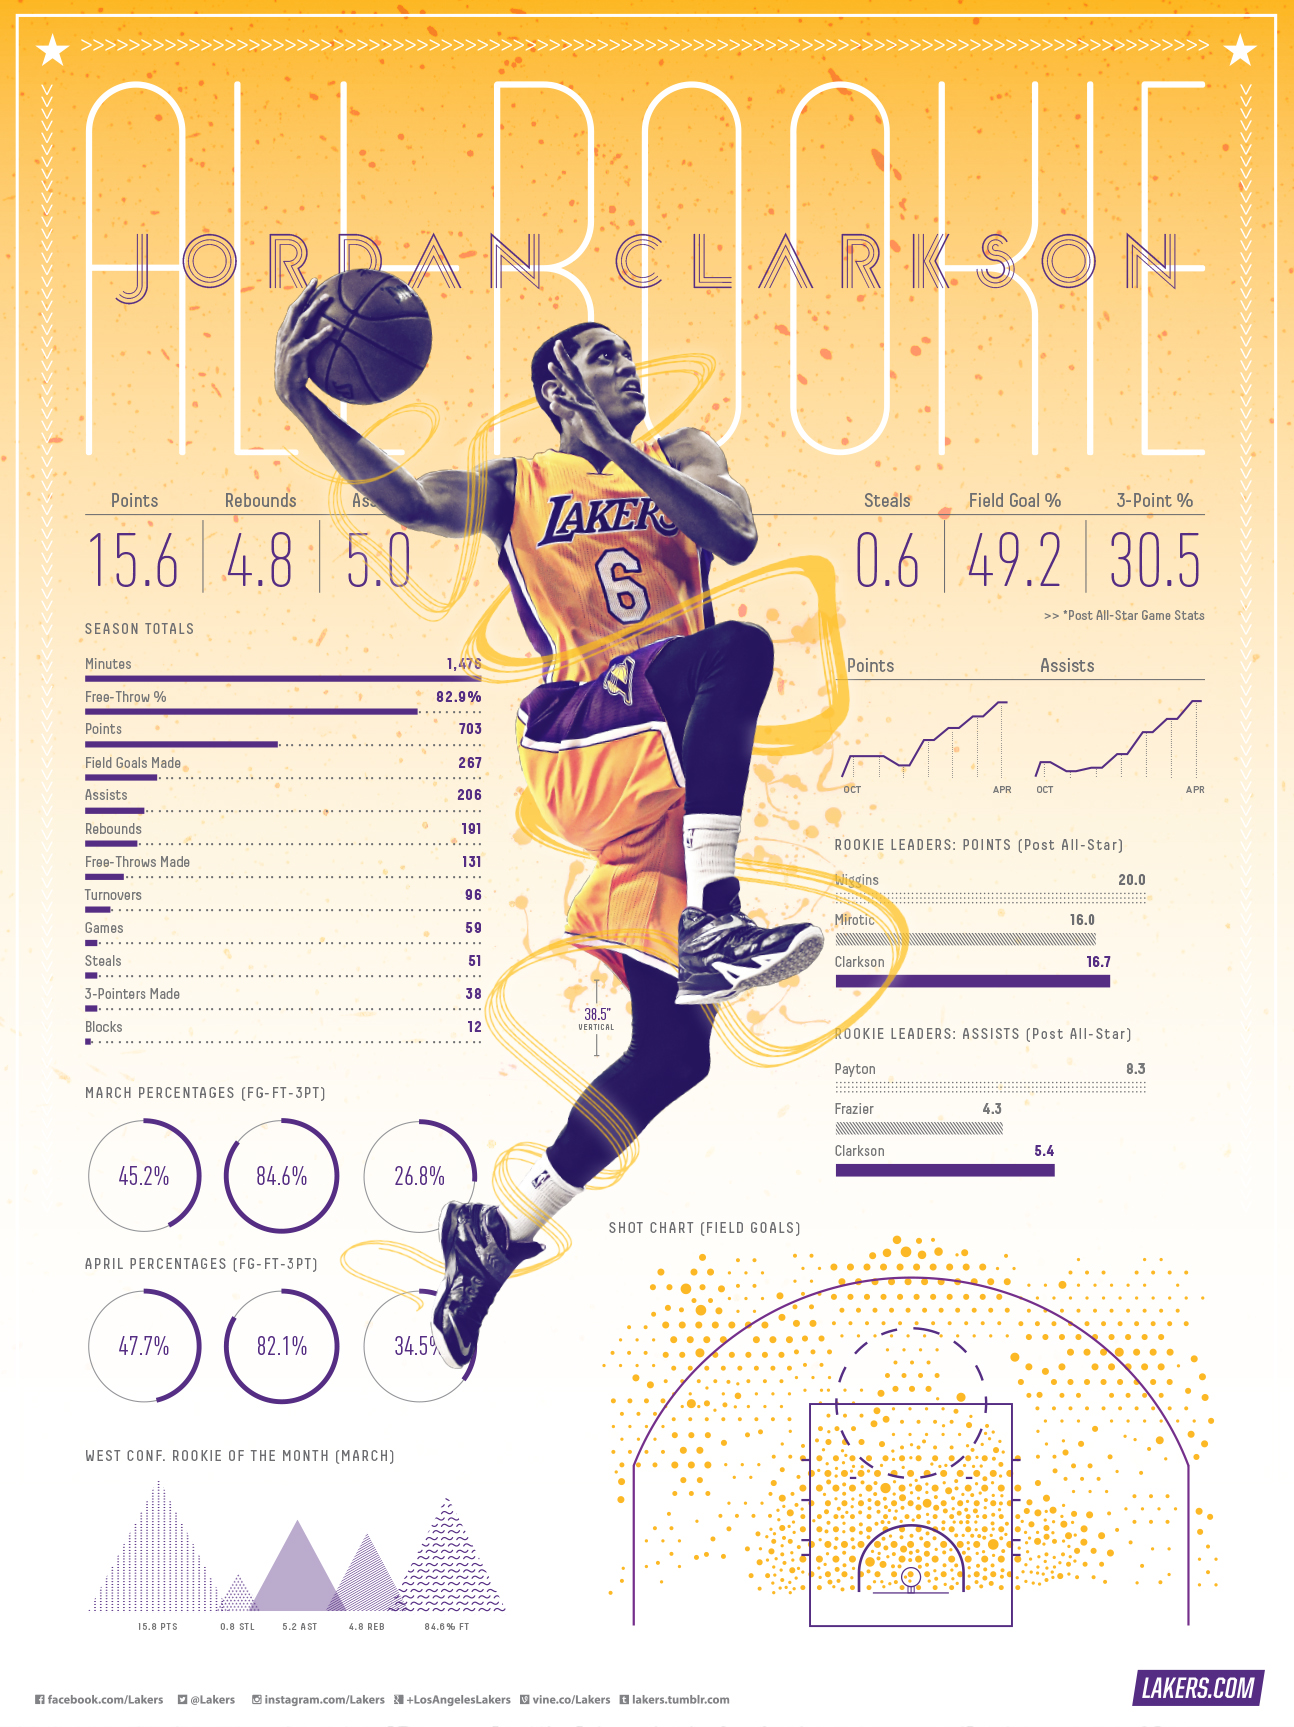 Lakers Wallpapers And Infographics Jordan Clarkson